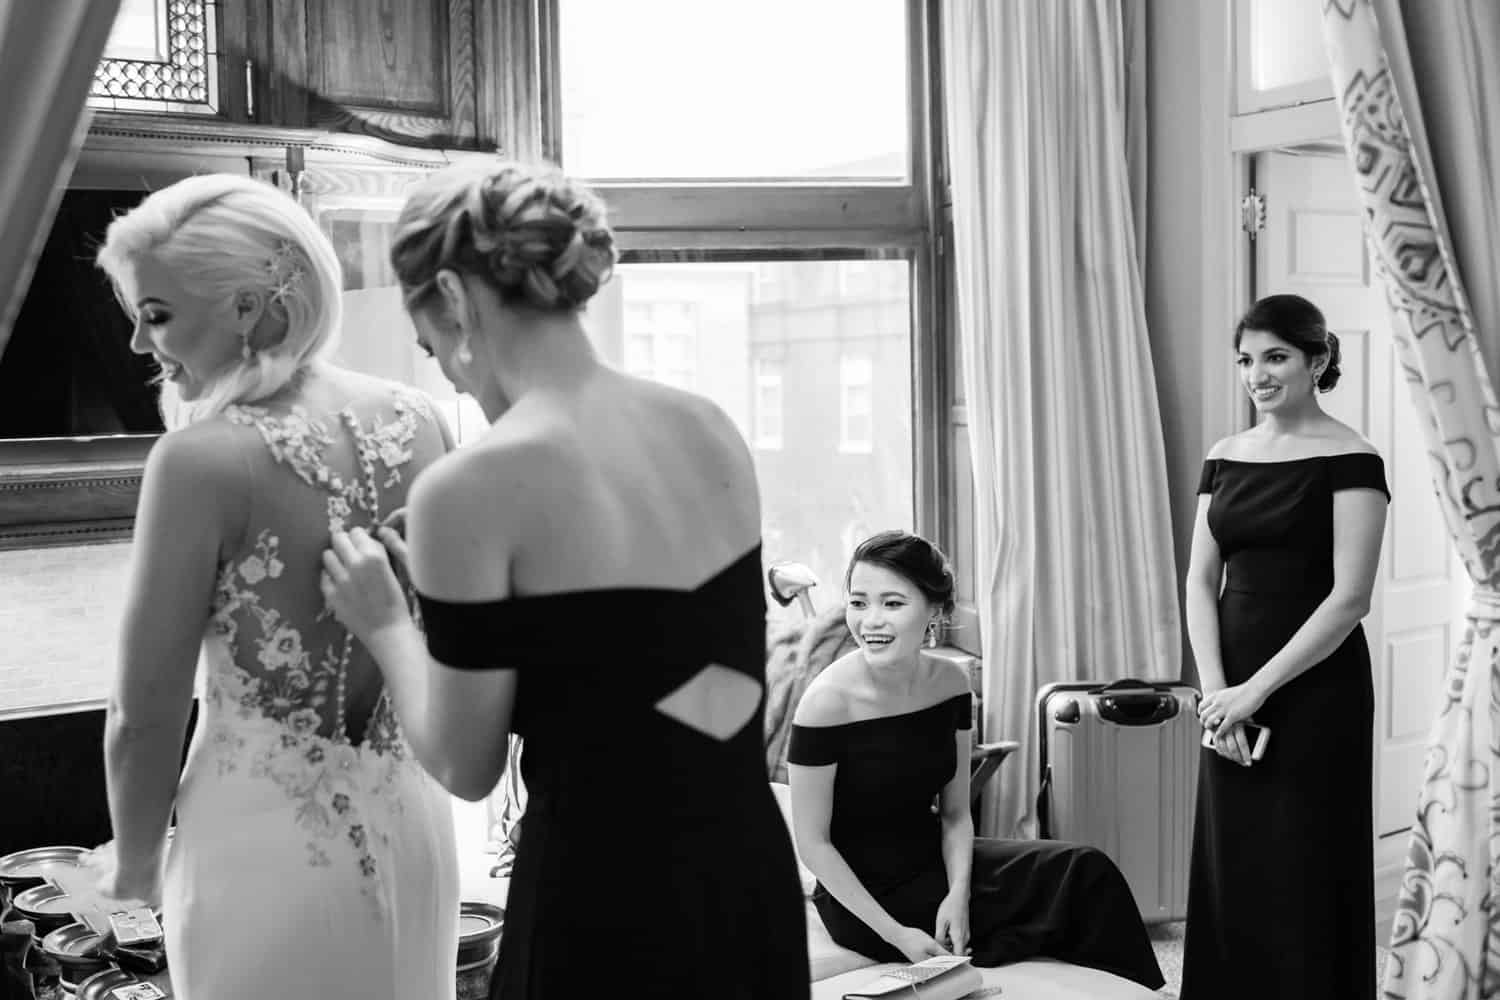 Wedding party member assisting the bride. Photo taken by Merkle Photography.